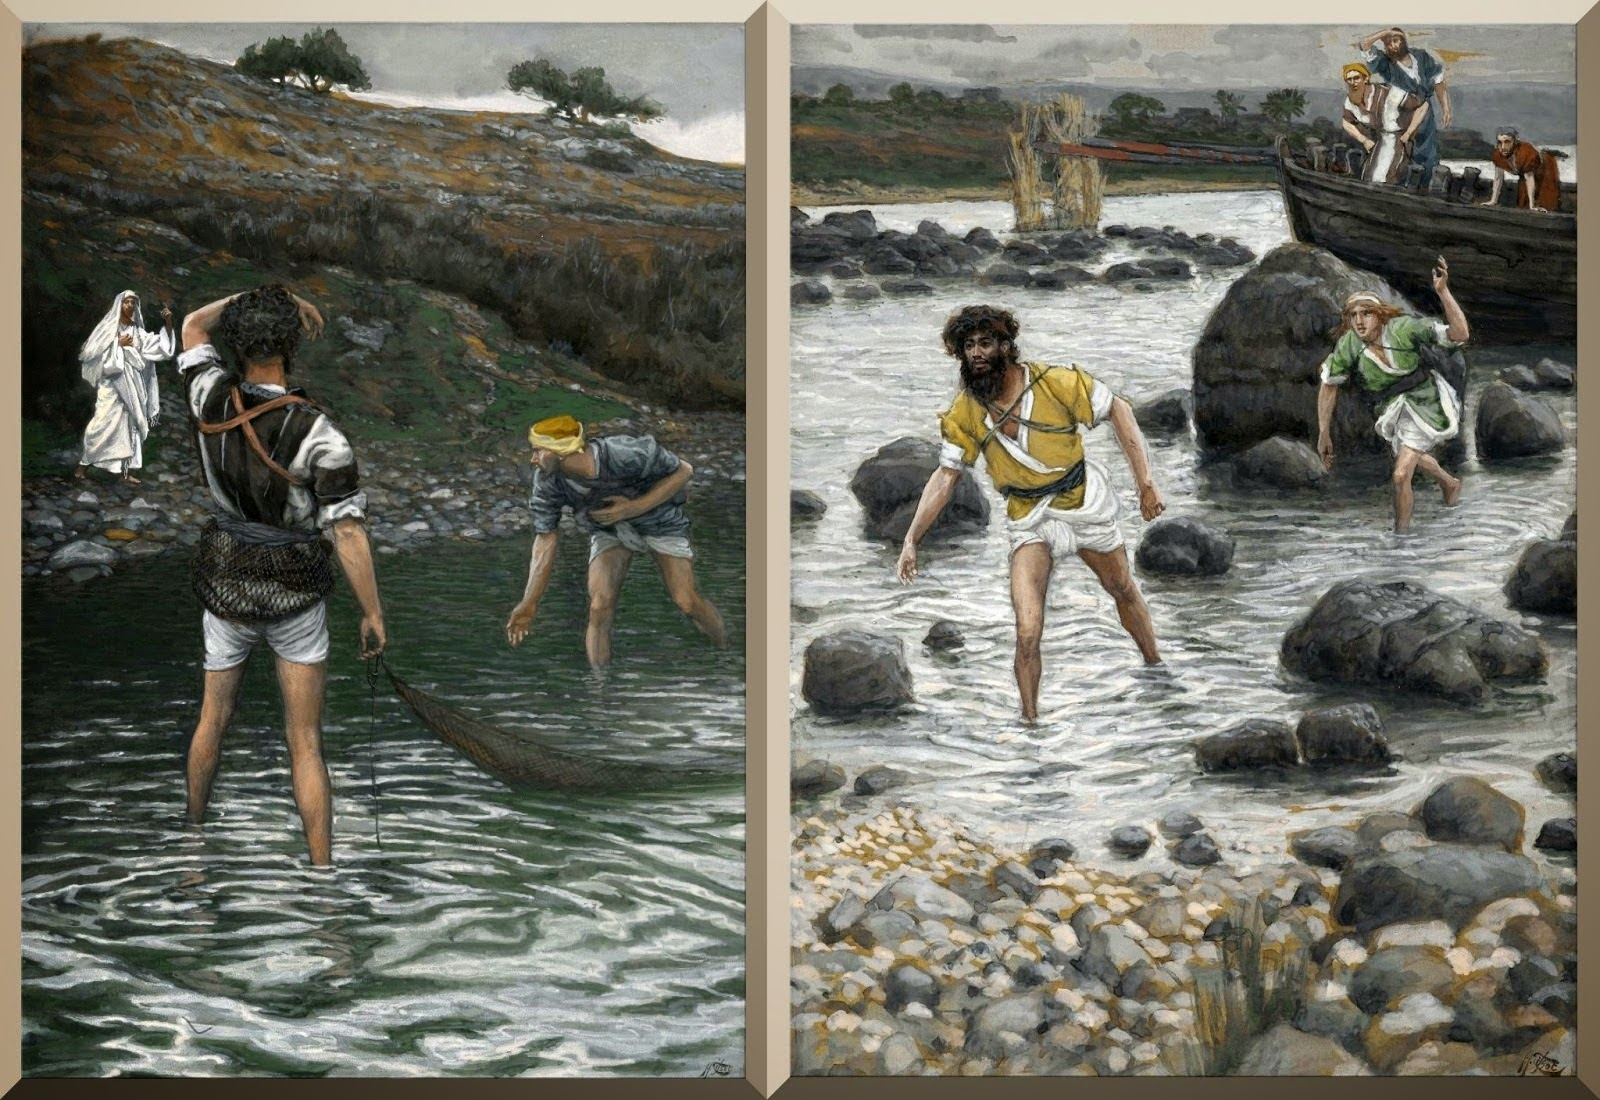 """The Calling of Saint Peter and Saint Andrew"" (left) and ""The Calling of Saint James and Saint John"" (right) -- by James Tissot"